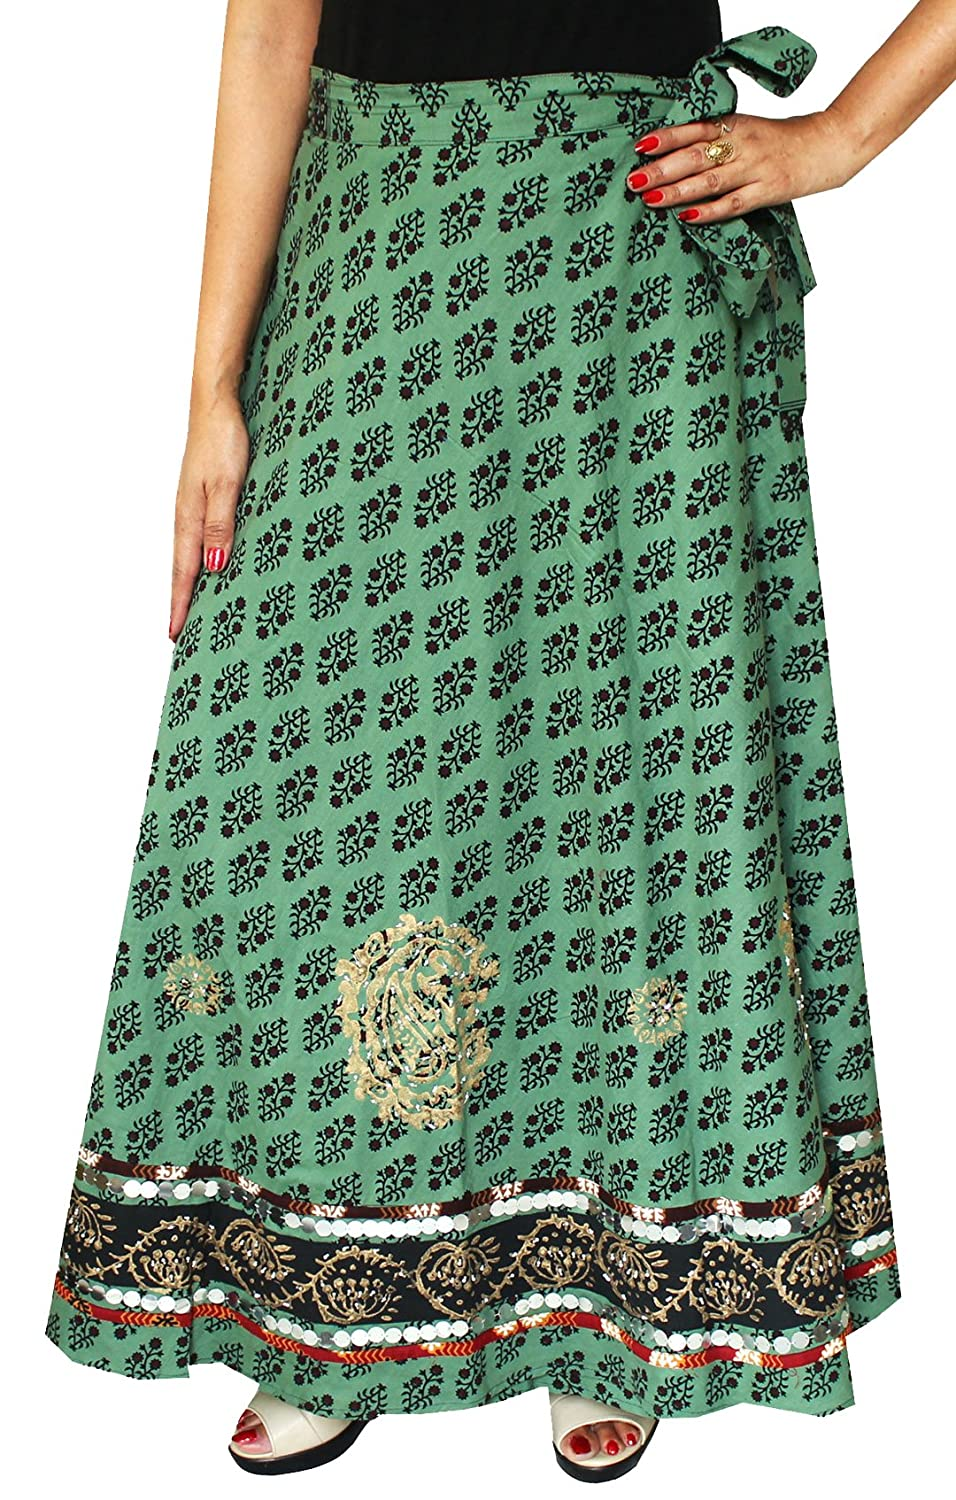 Cotton Wrap Around Larga Para Mujer Falda Maxi India Ropa (Verde ...